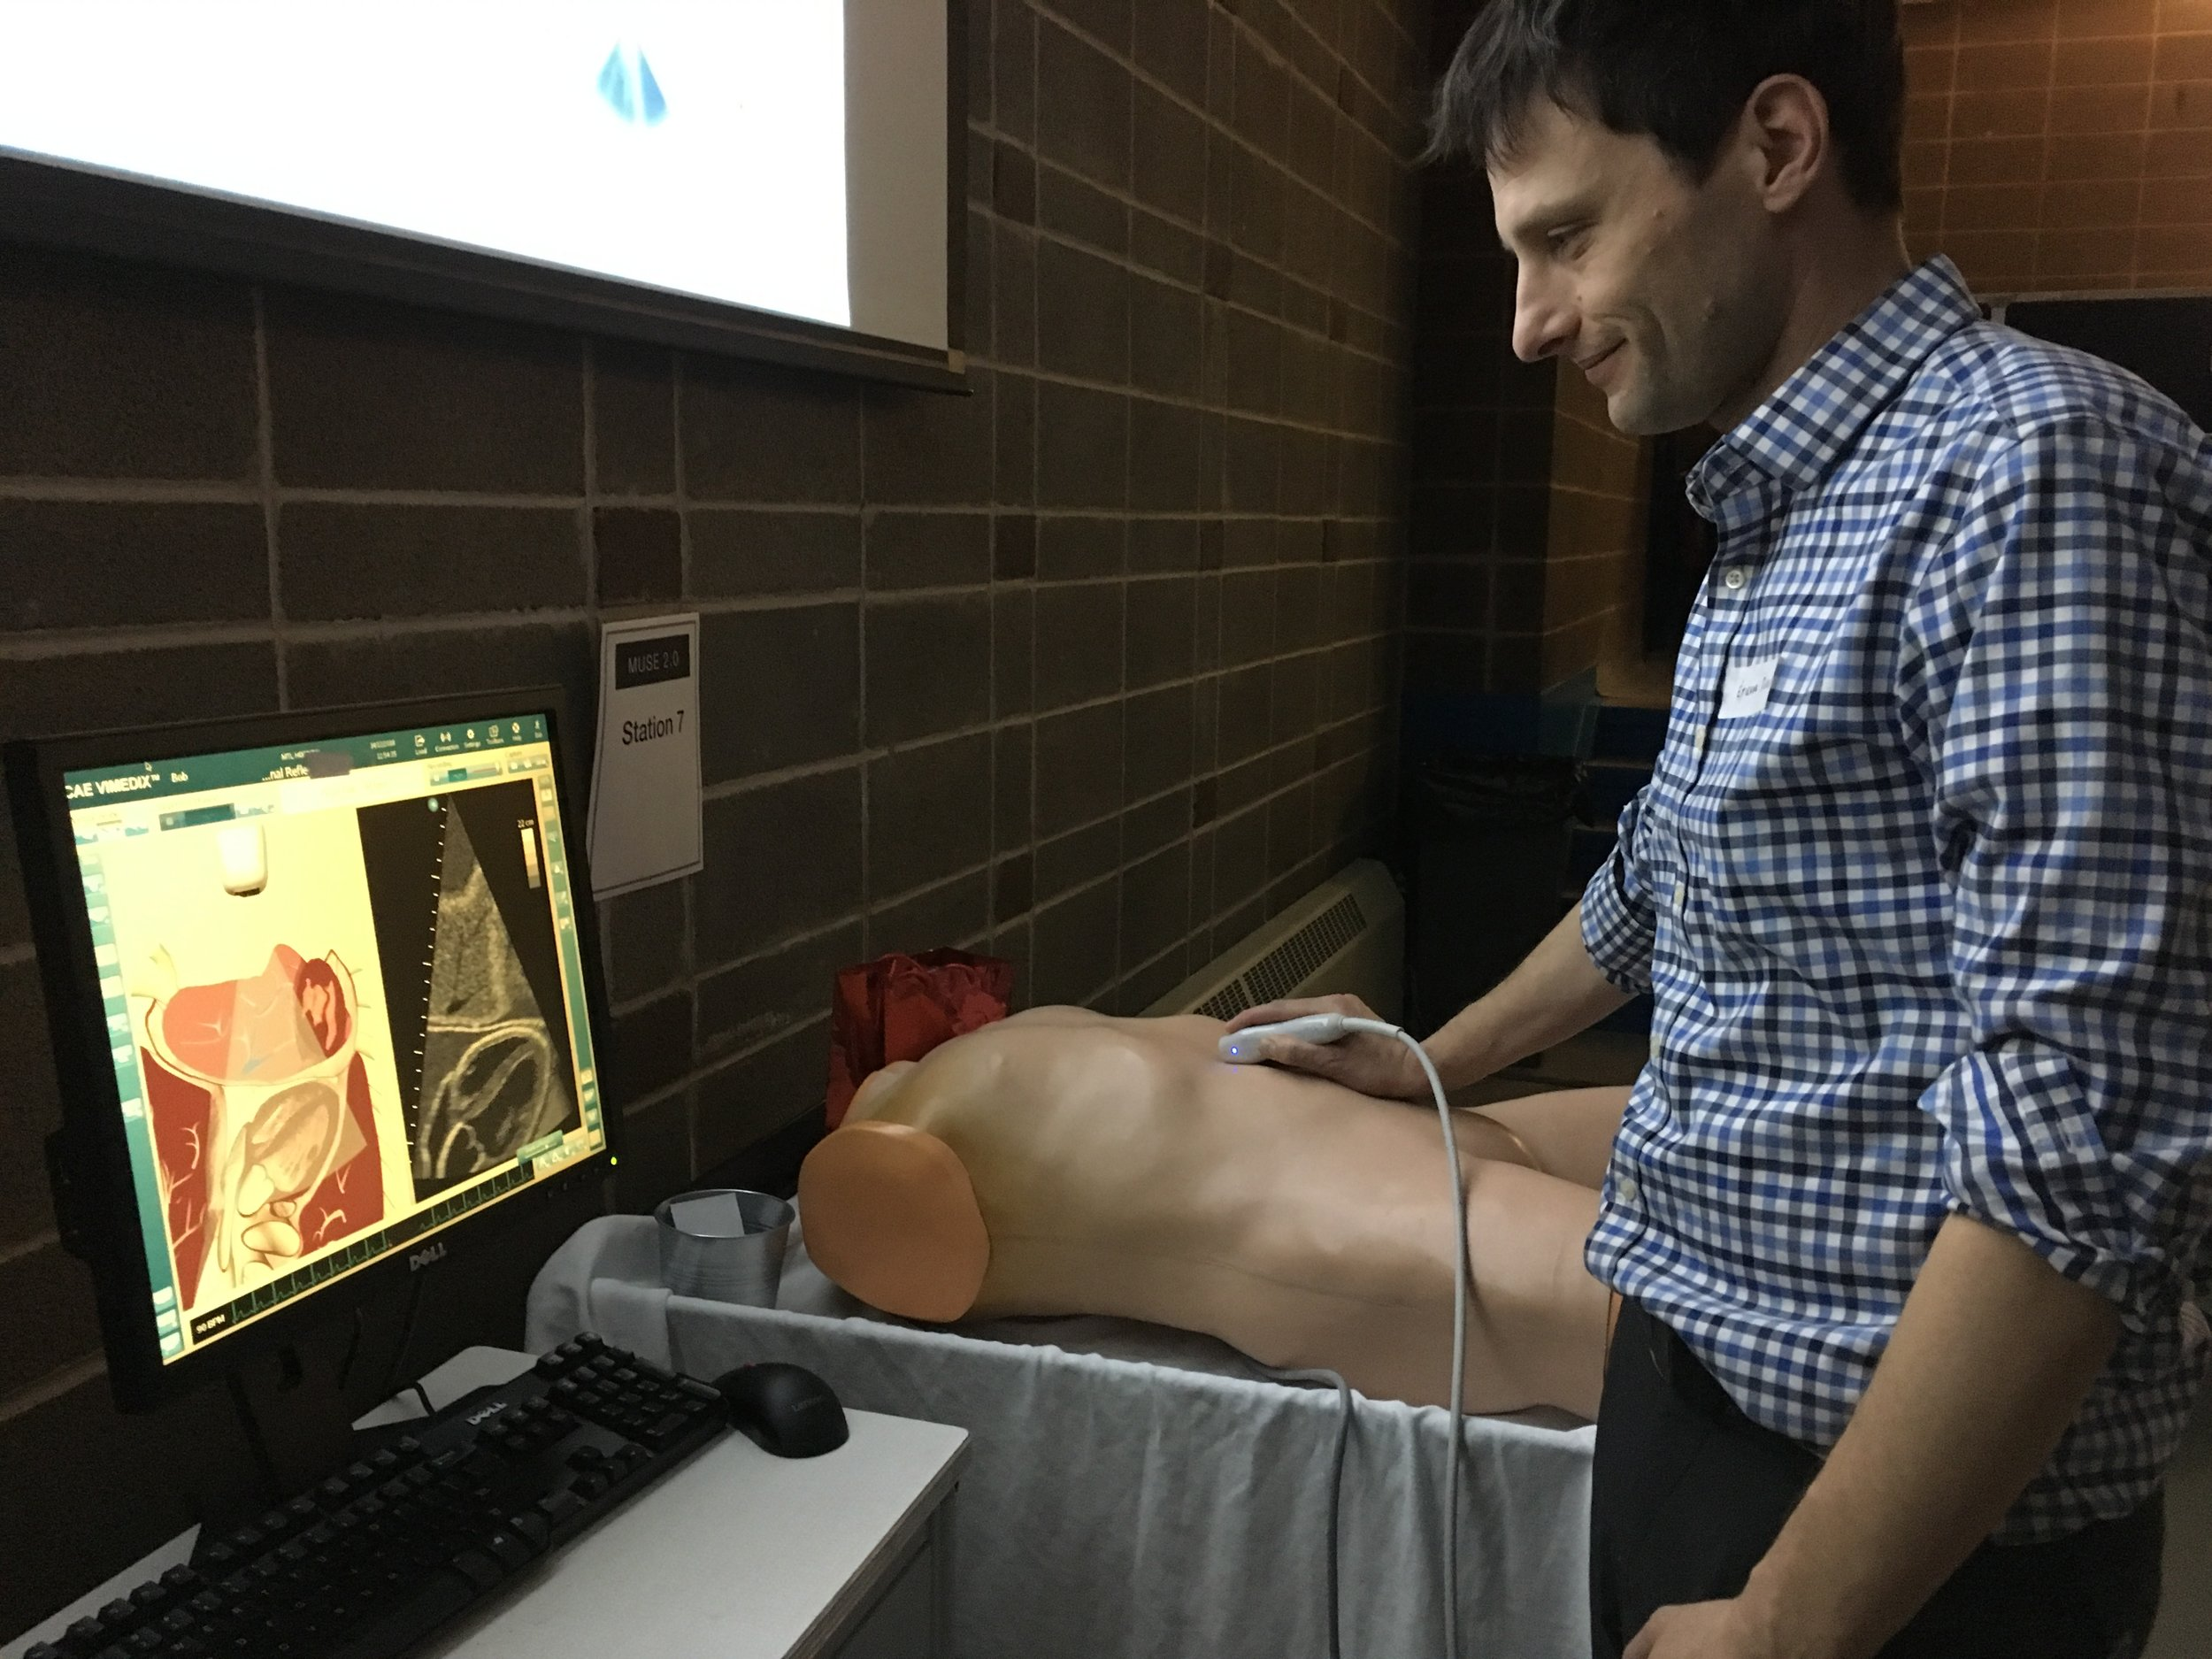 Cardiac/Abdominal simulator with programmed pathology